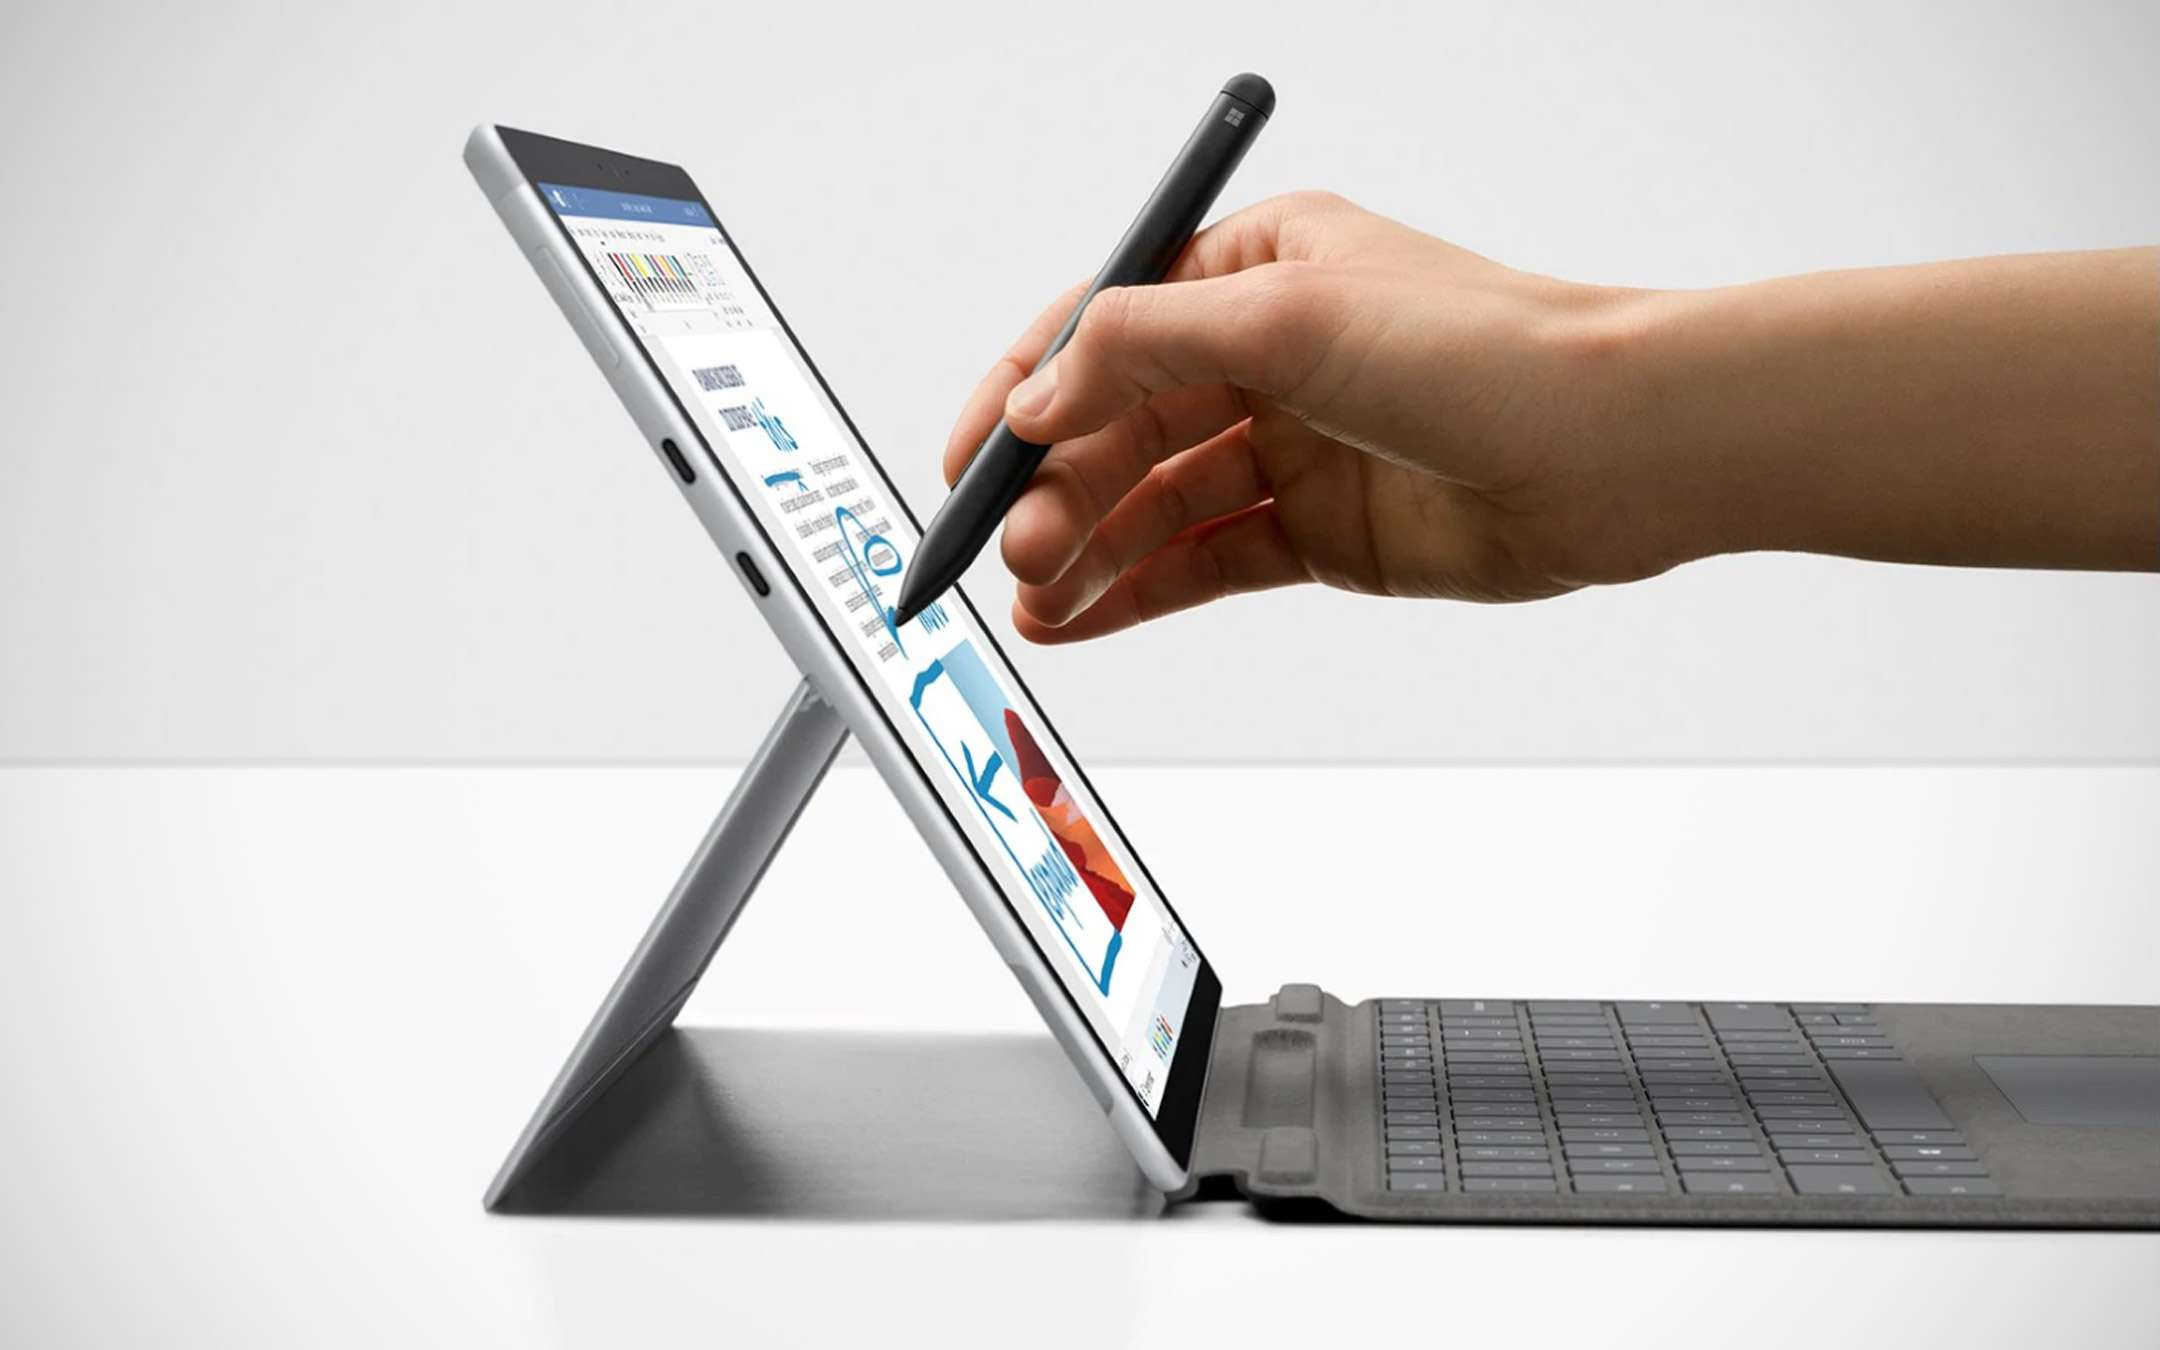 The new Surface Pro X with Microsoft SQ 2